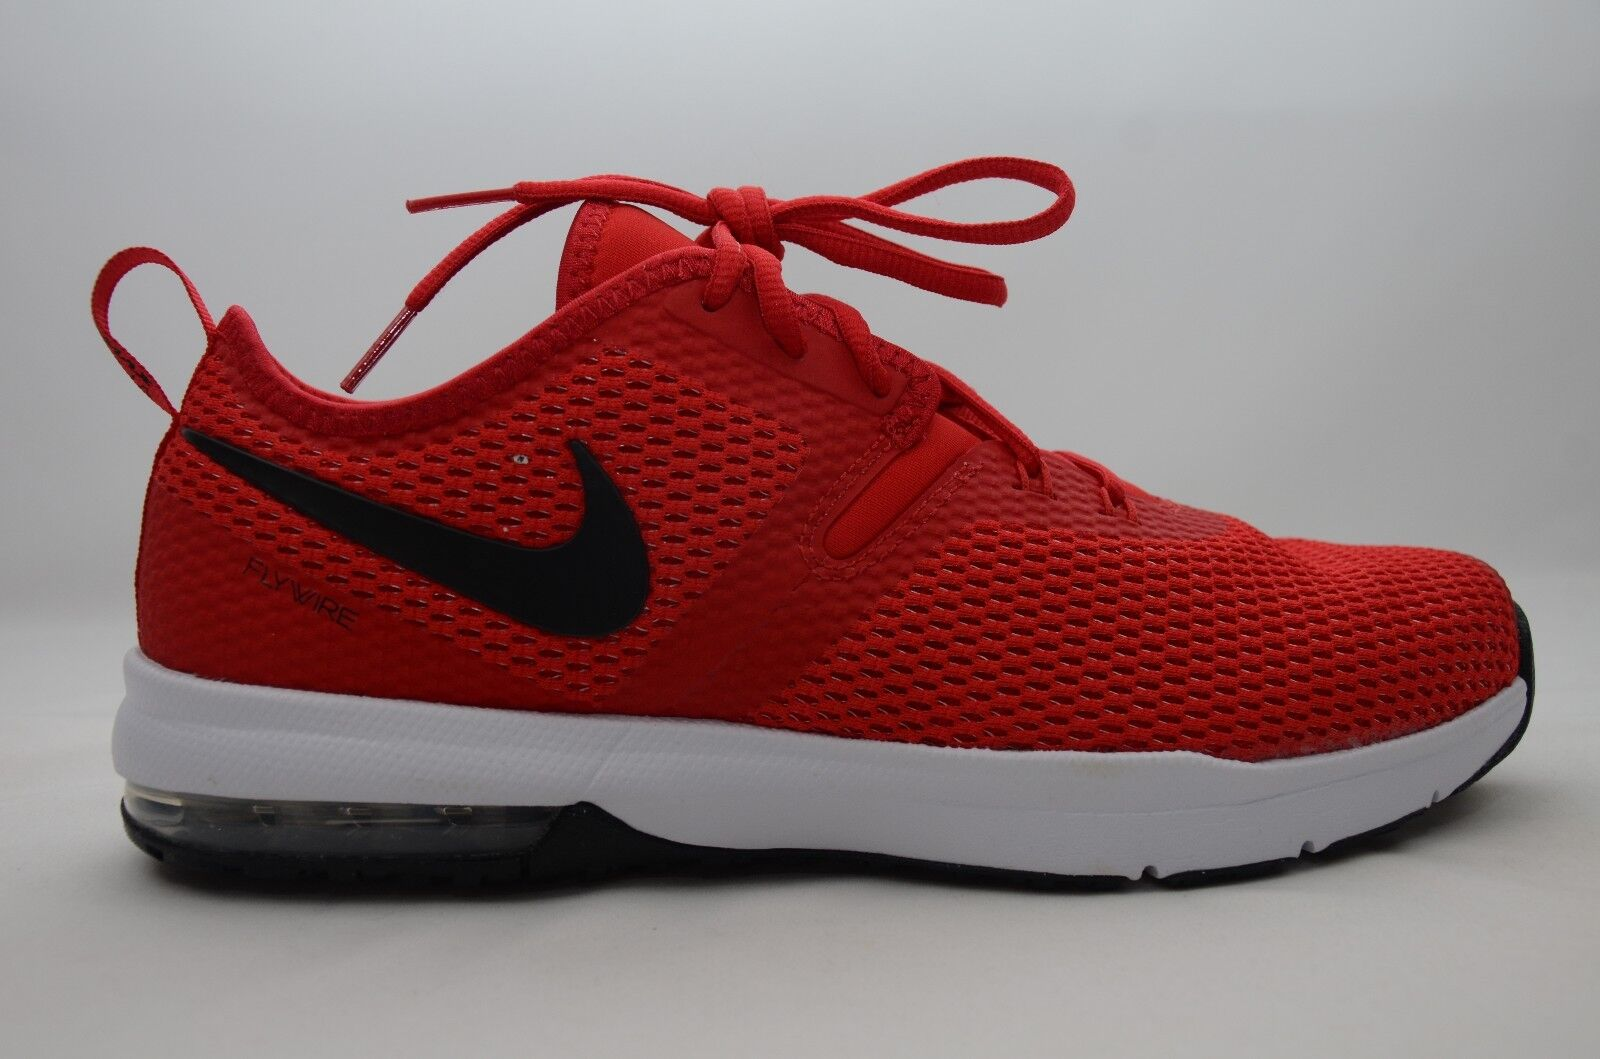 Nike Air Max Typha 2 Red Men's Men's Men's Size 10-13 New in Box NO Top Lid AO3020 600 59e4ee